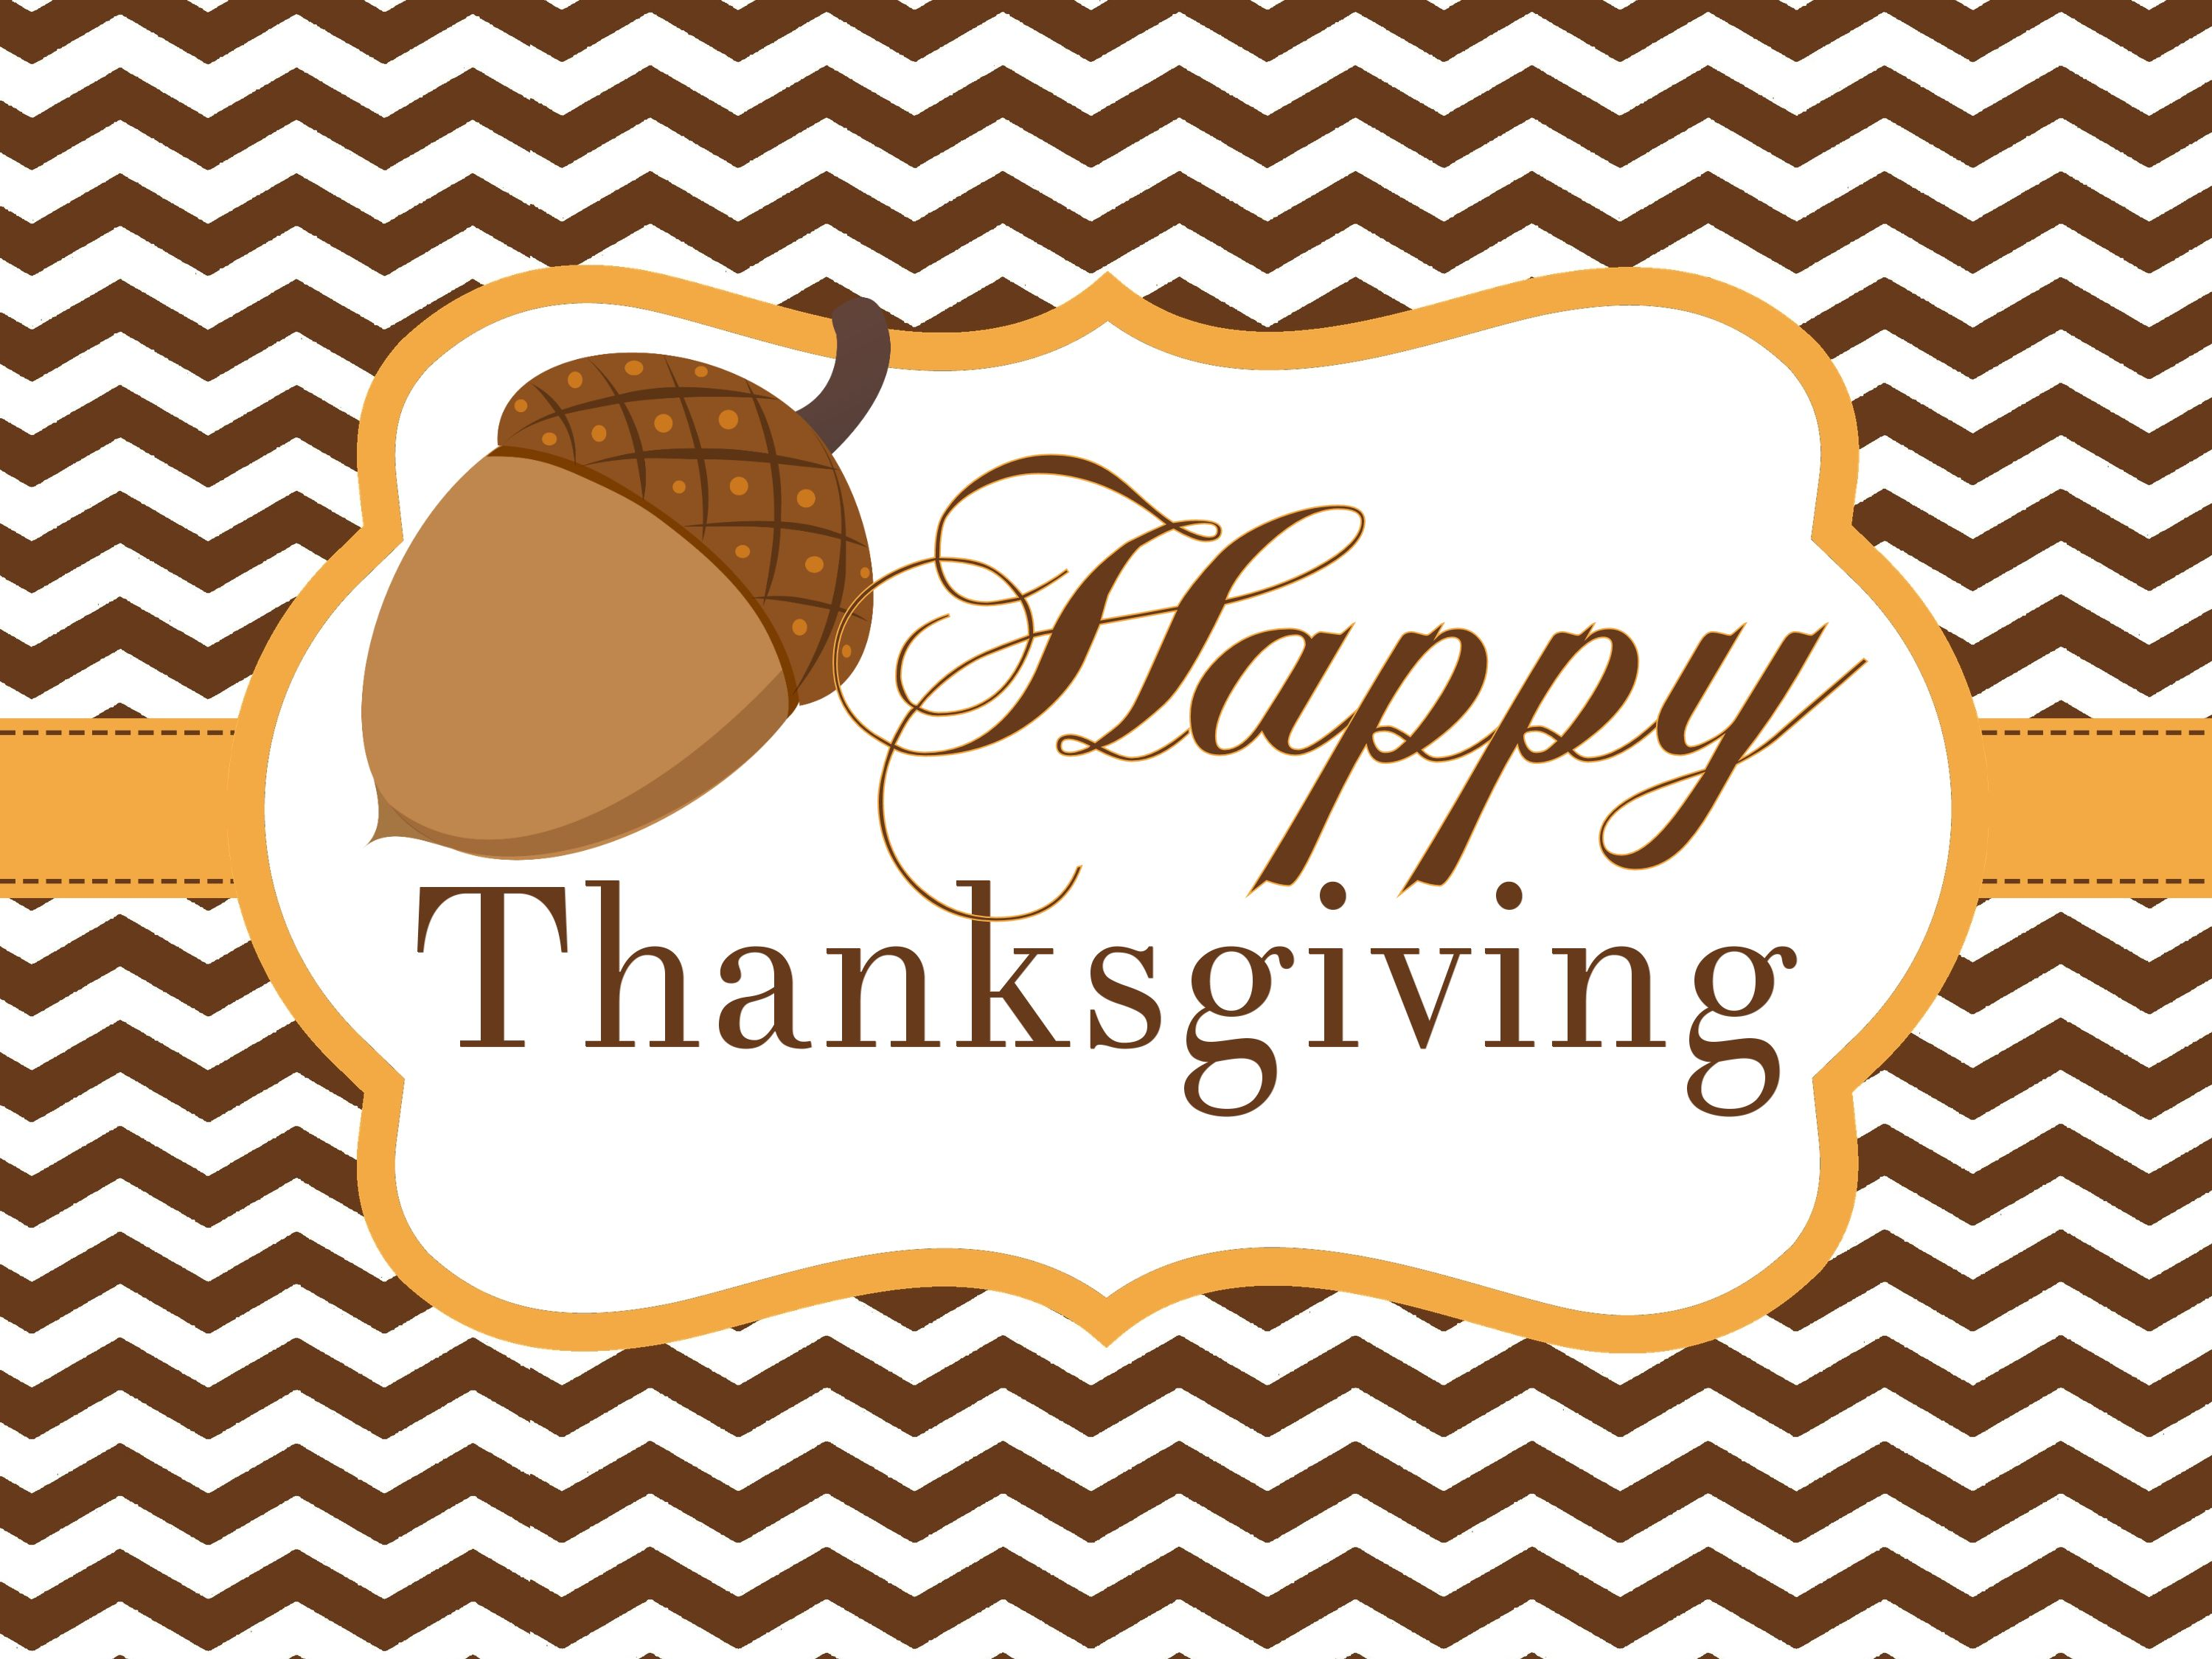 It is a photo of Happy Thanksgiving Signs Printable with first thanksgiving quotes